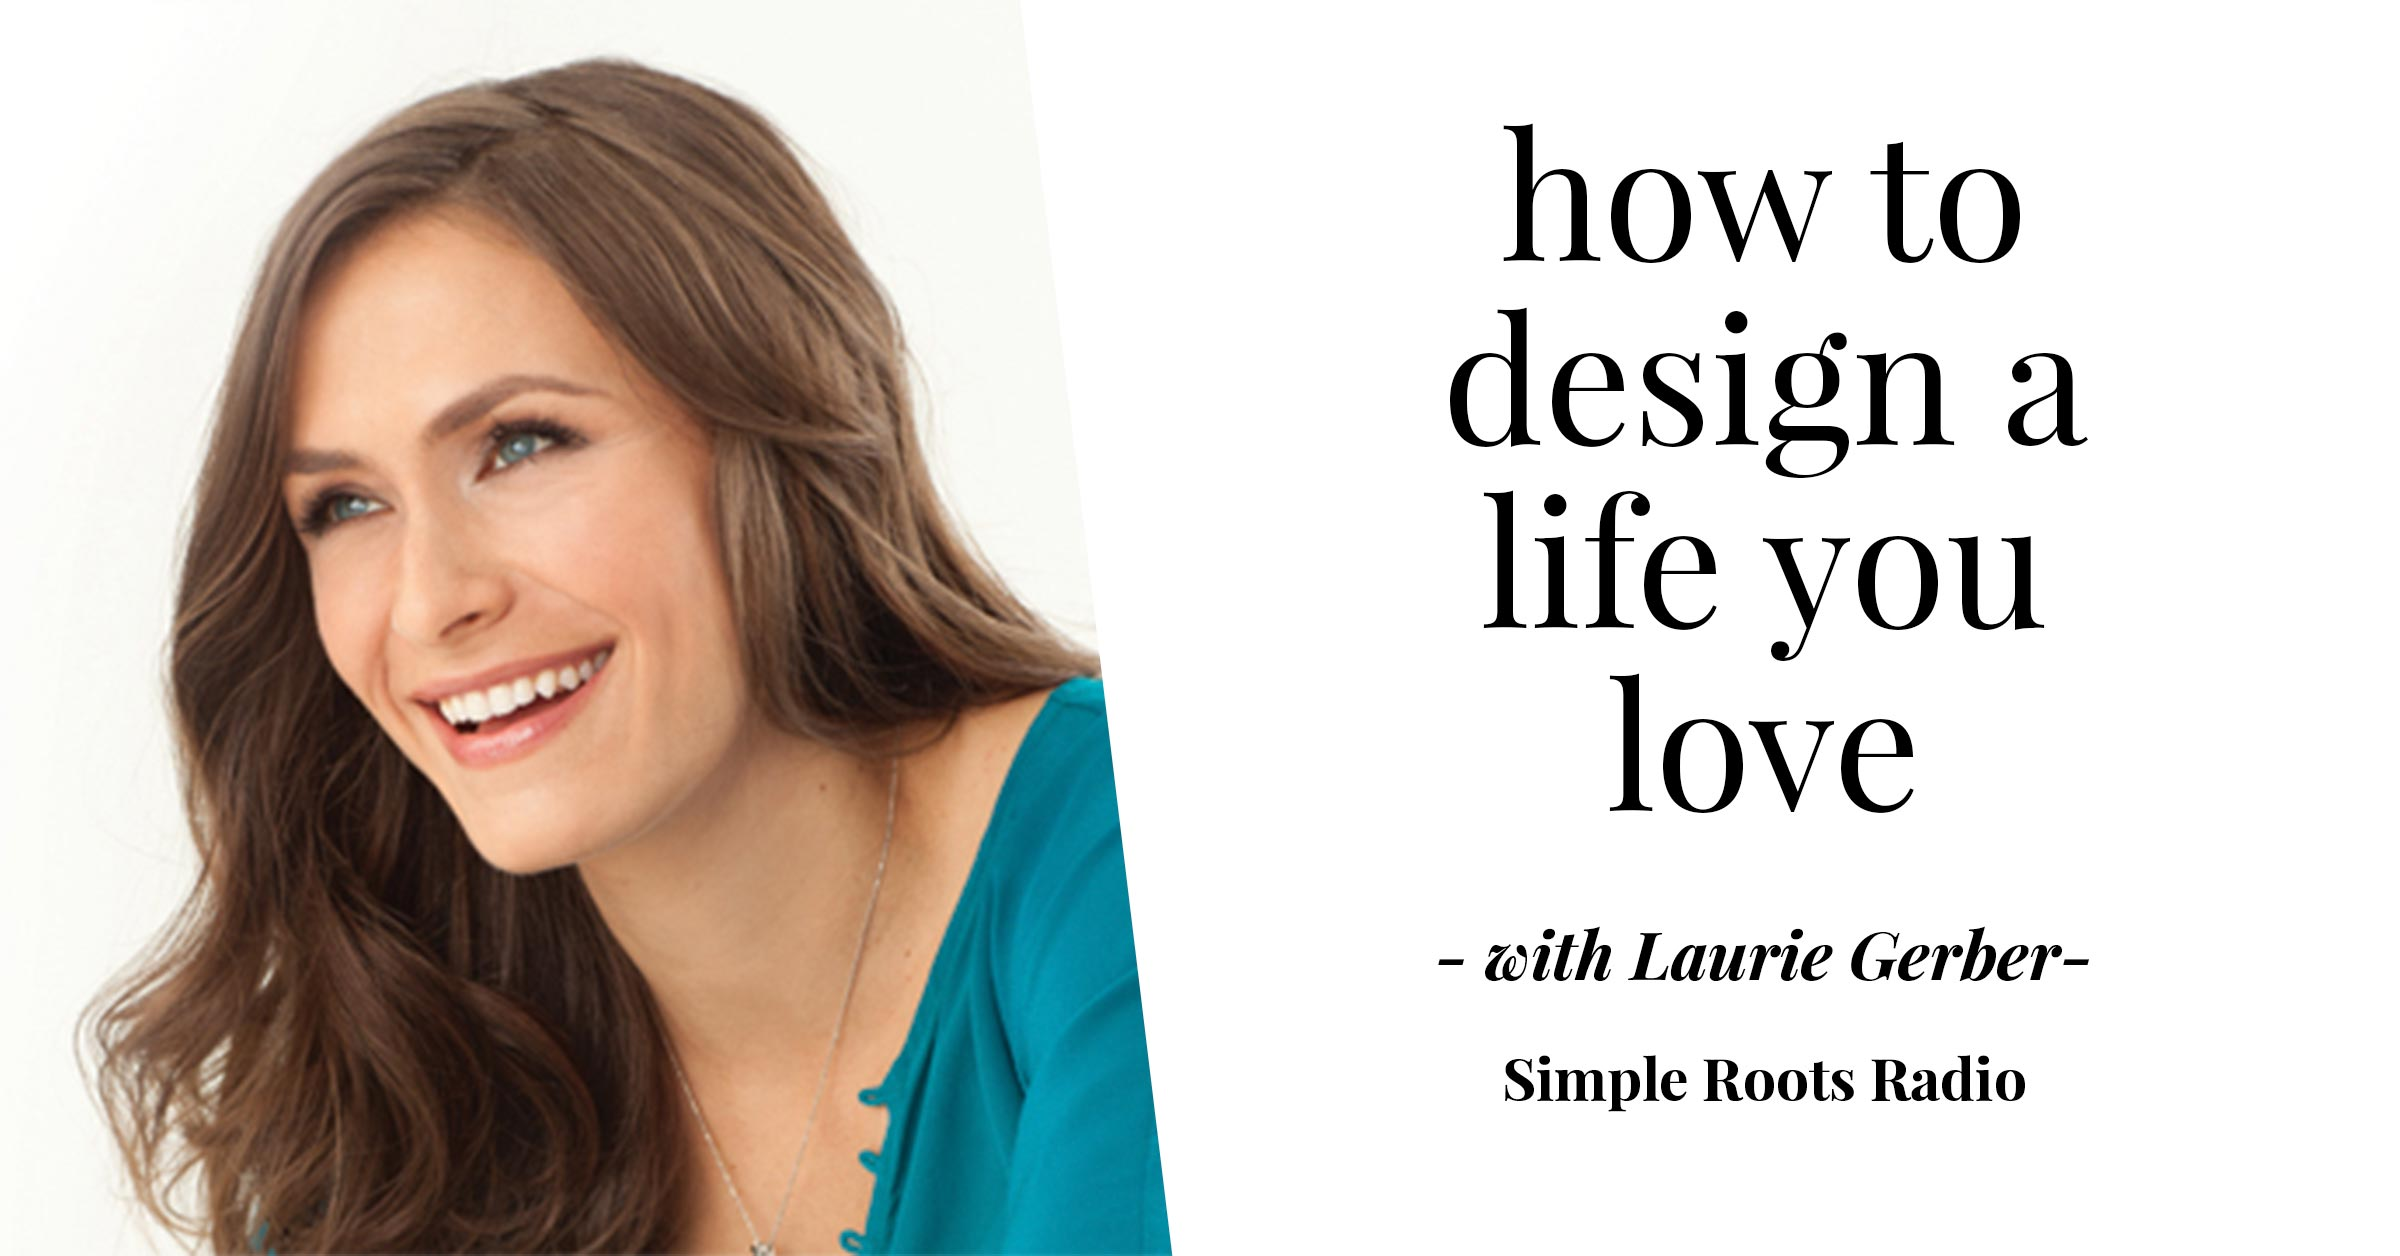 laurie-How to Design A Life You Love | simplerootswellness.com #podcast #newyear #goals #resolutions #health